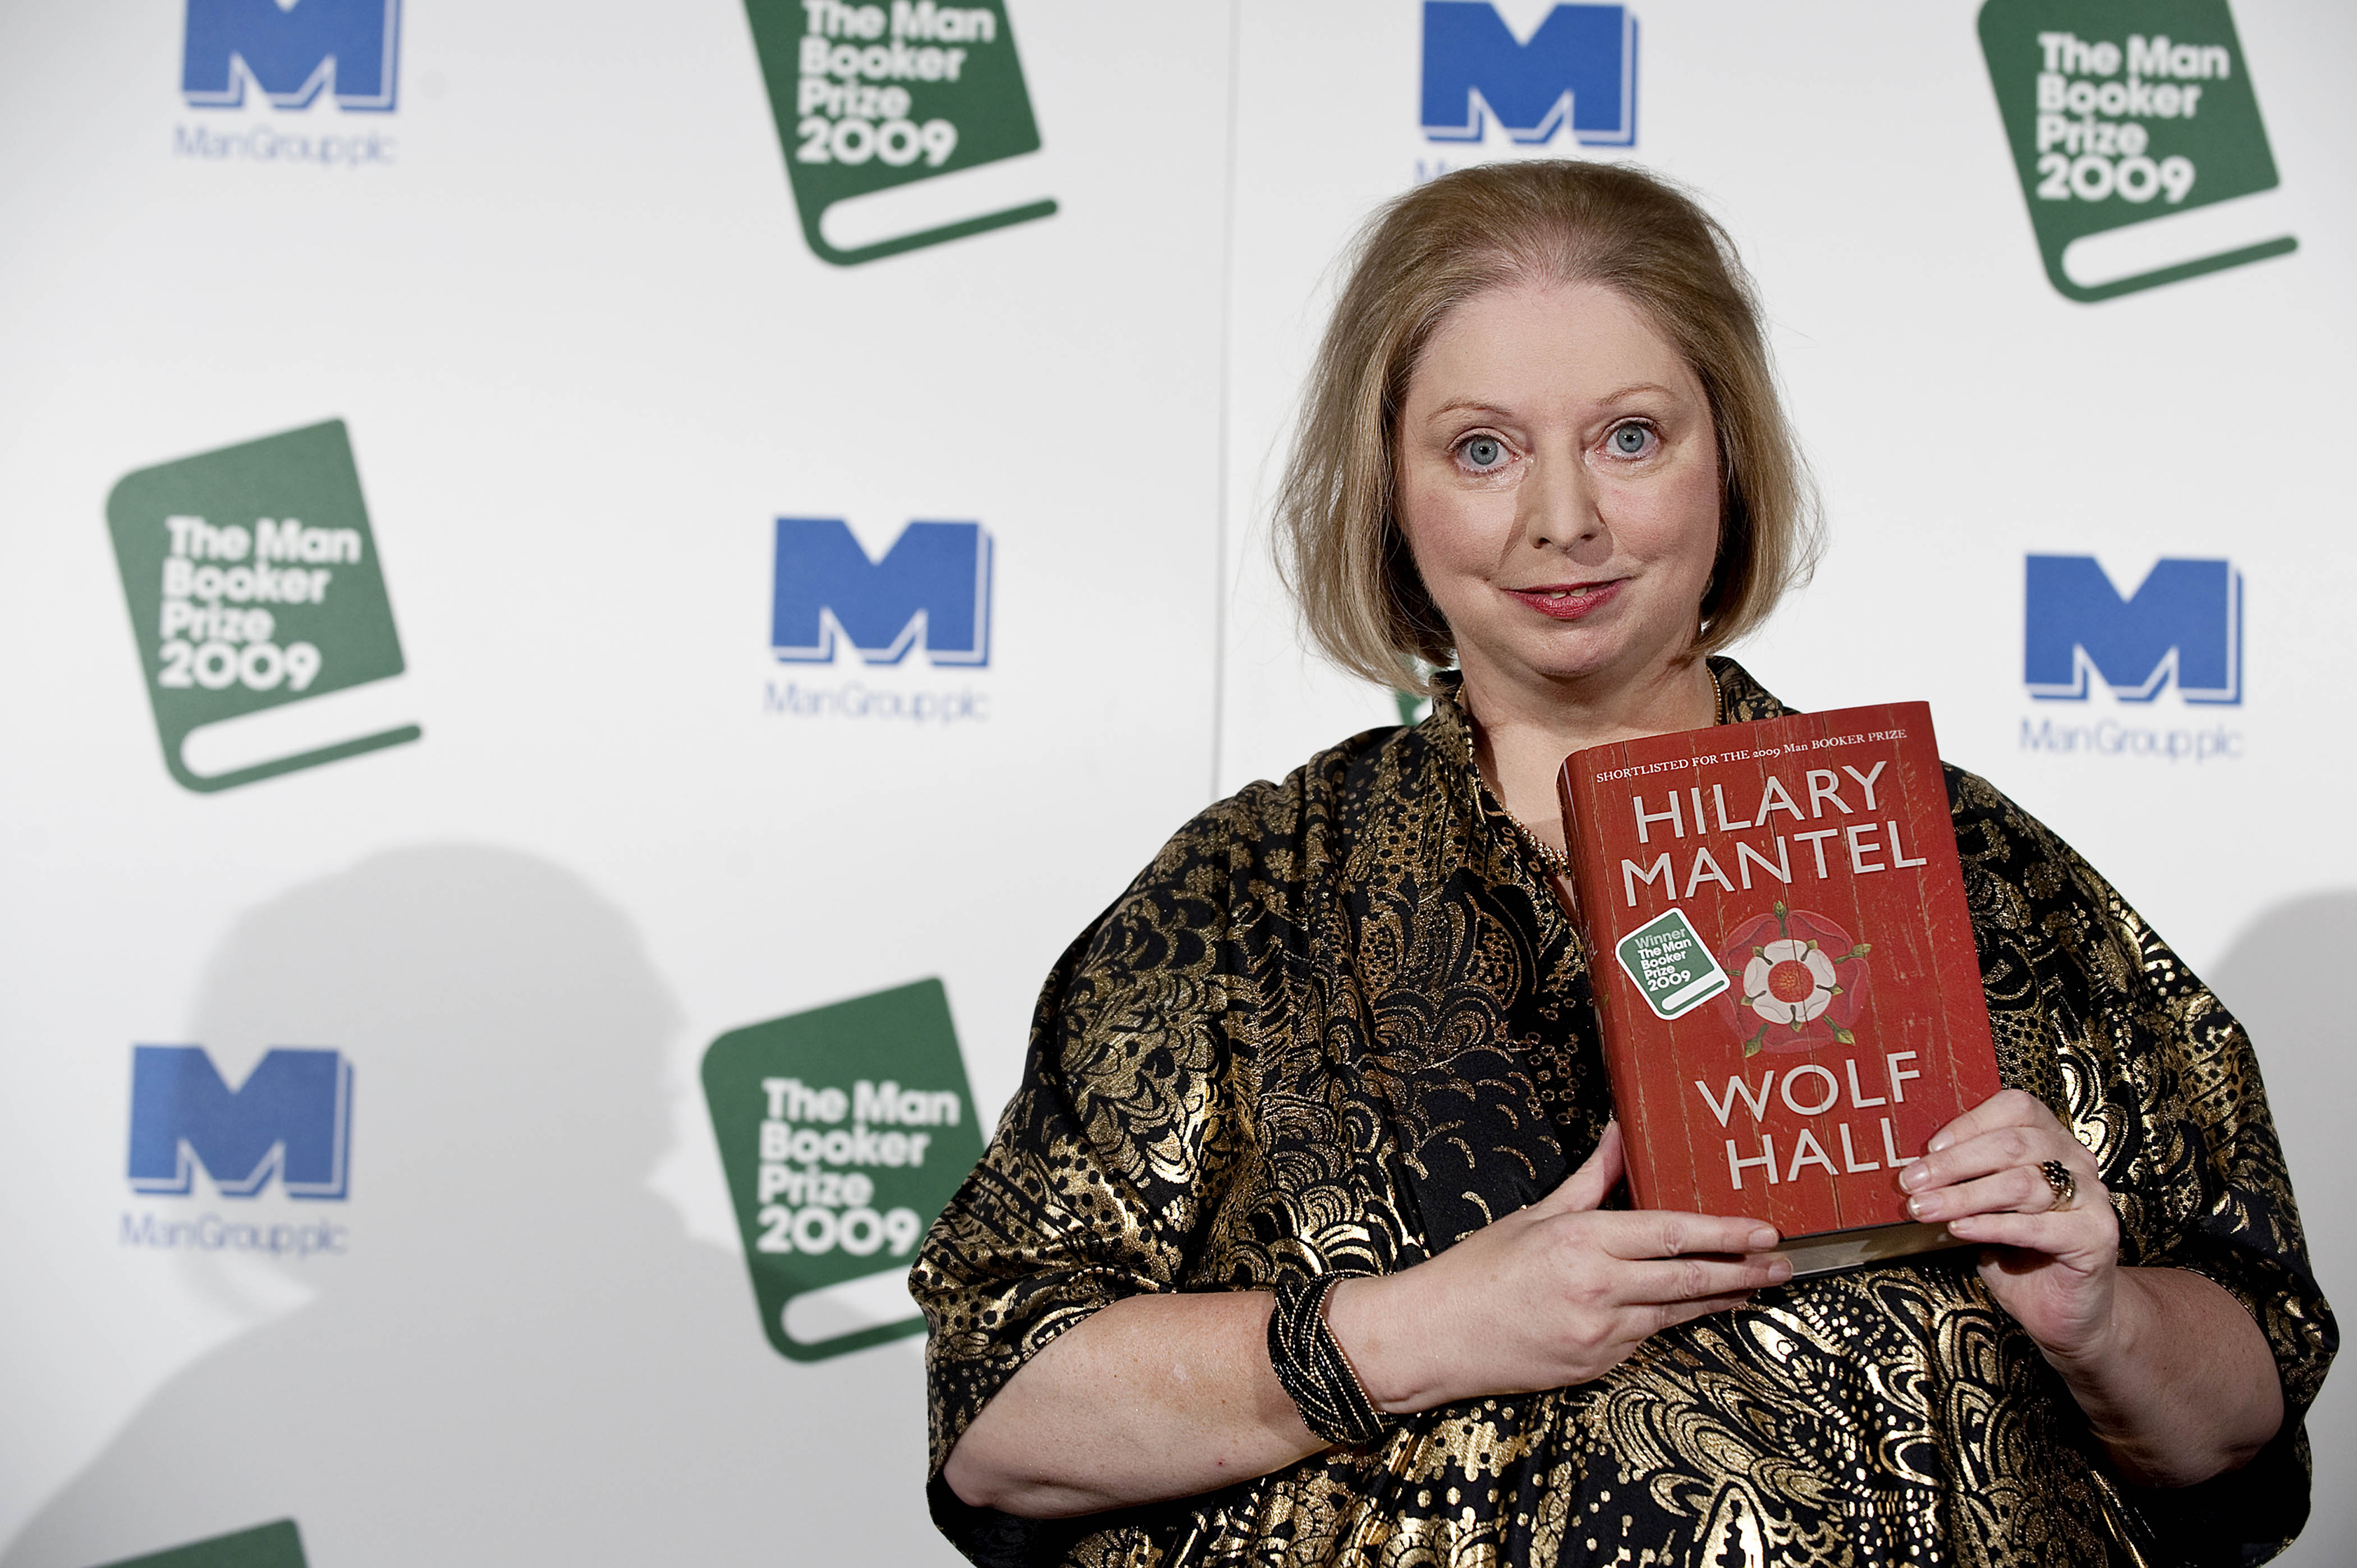 British author Hilary Mantel is pictured